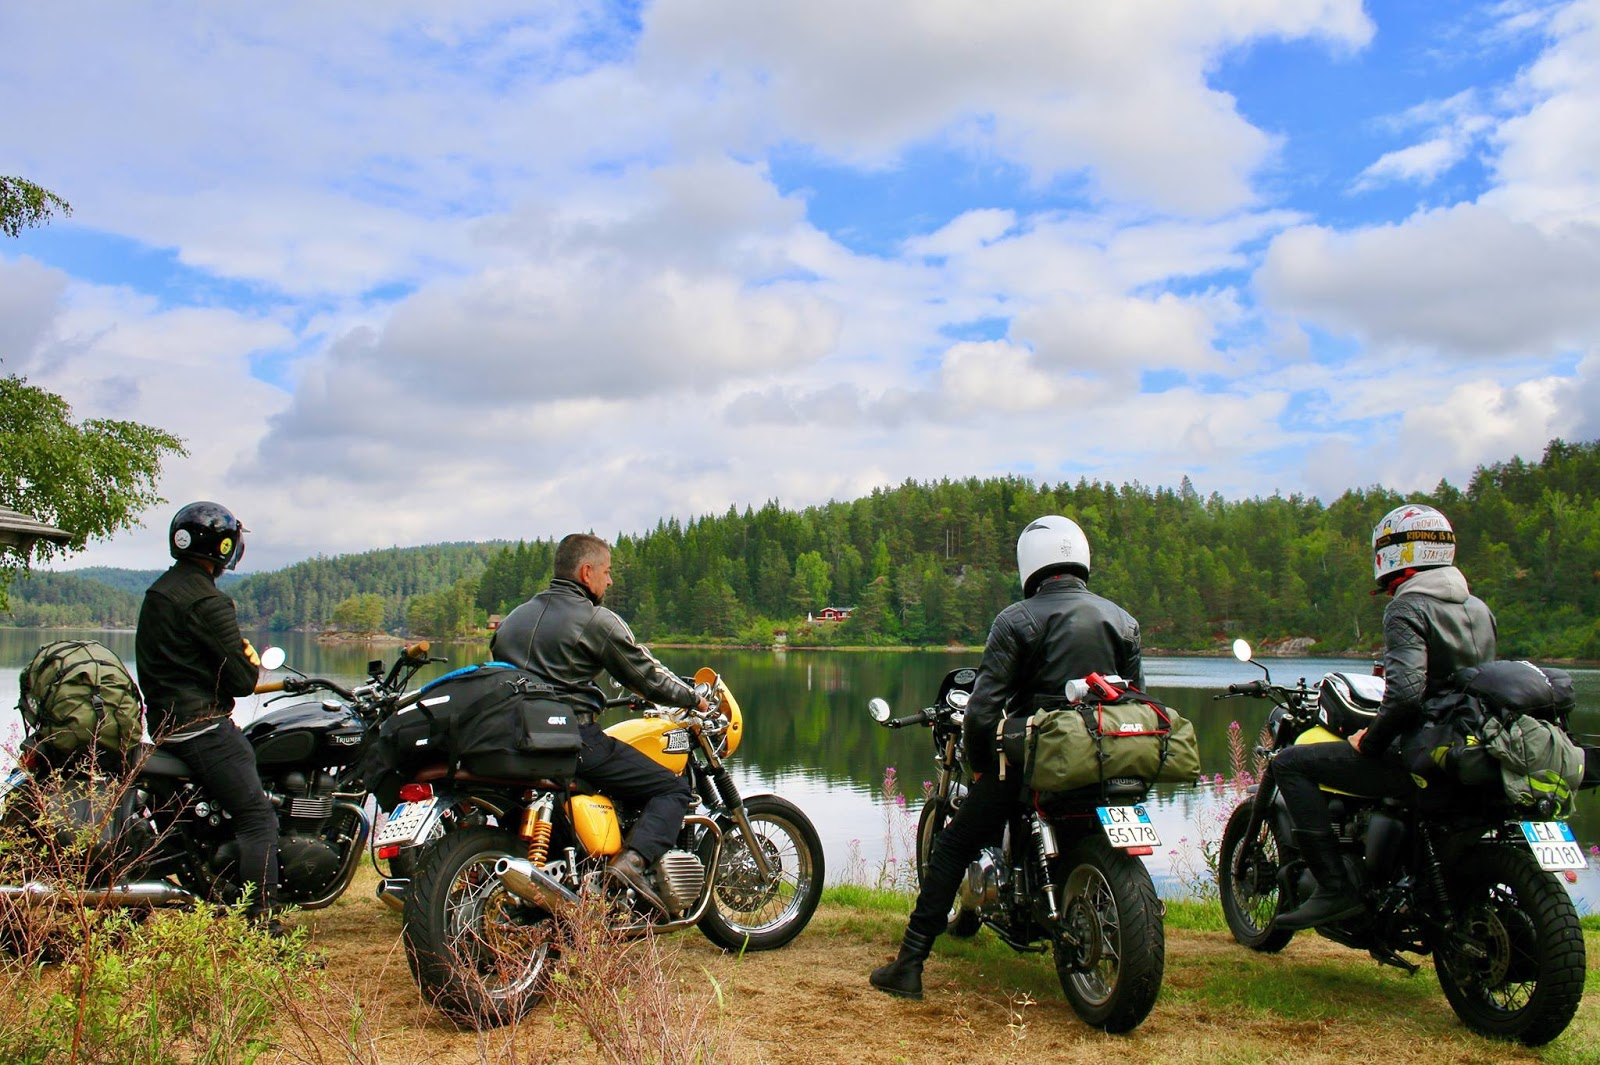 Sedia A Rotelle K100 Va Dove Ti Porta Il Cuore Road To Norway Rocketgarage Cafe